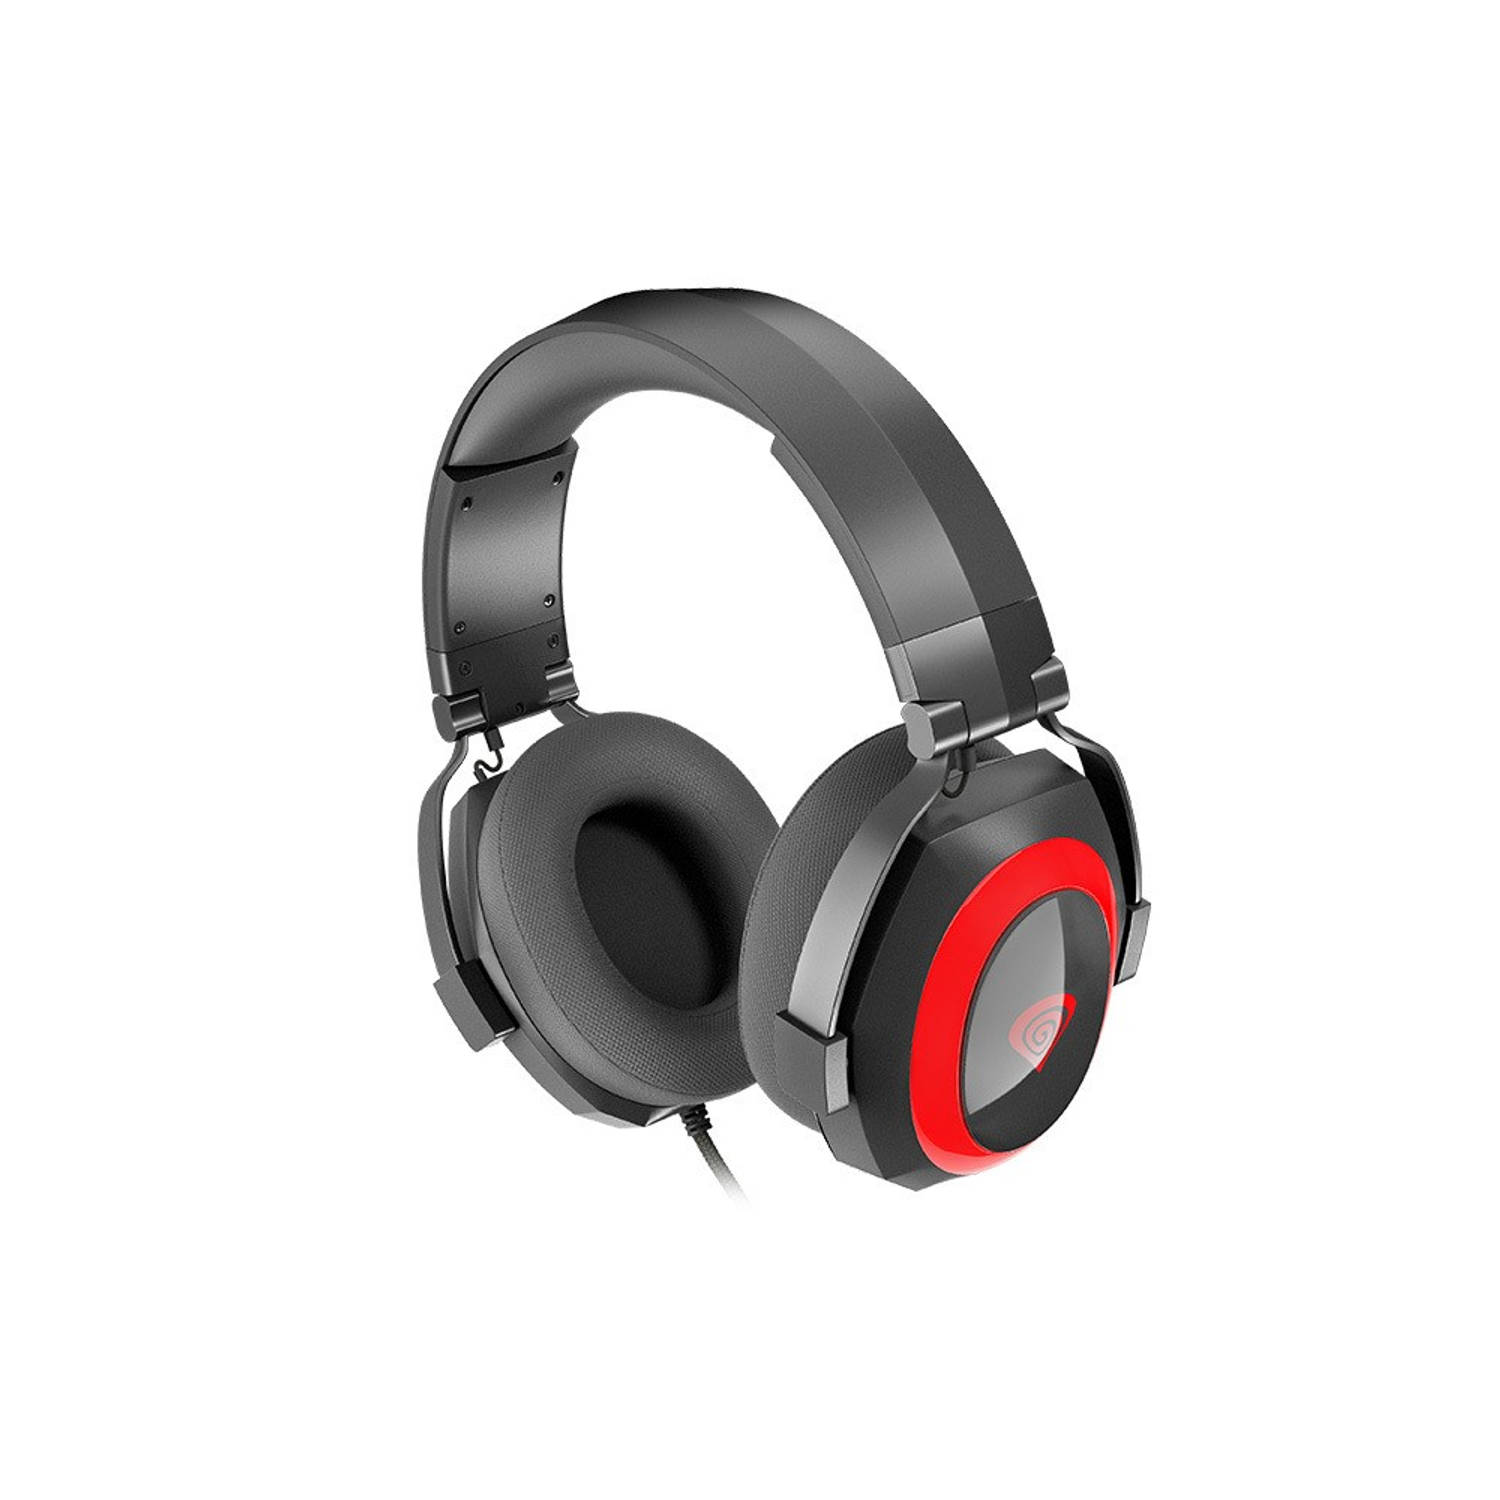 Argon 500 Stereo Gaming Headset